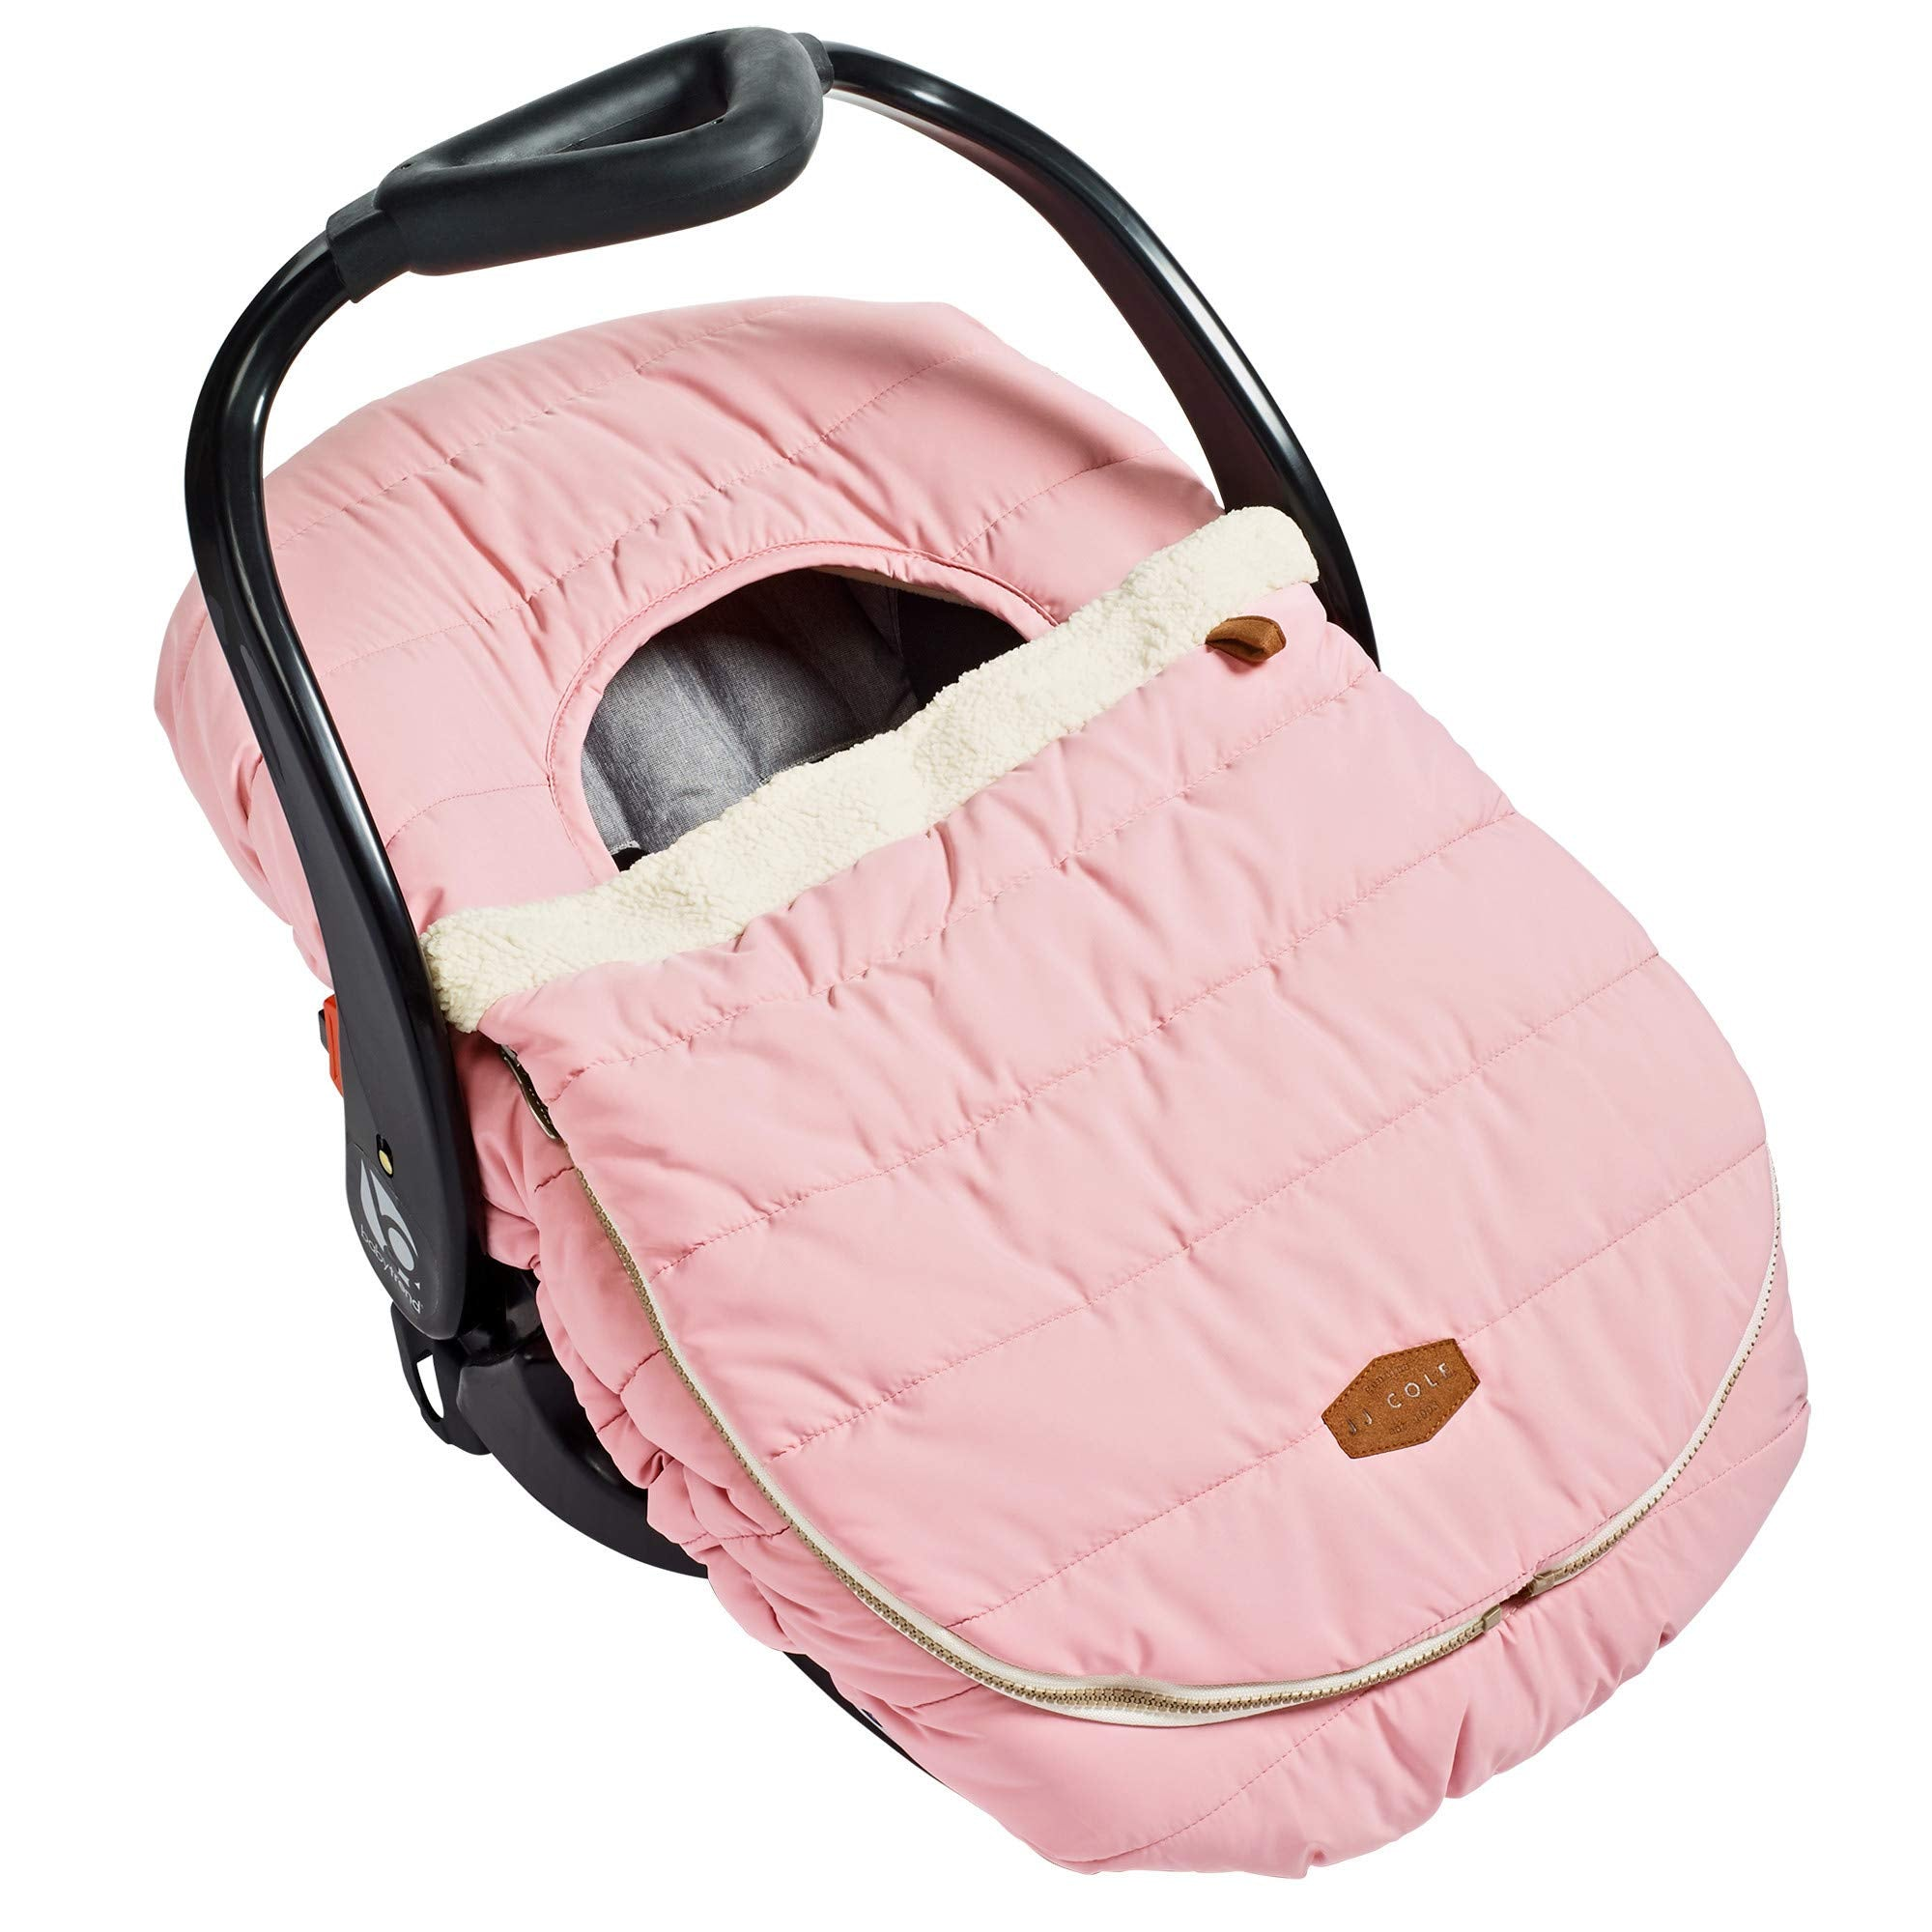 Car Seat & Nursing Baby Covers